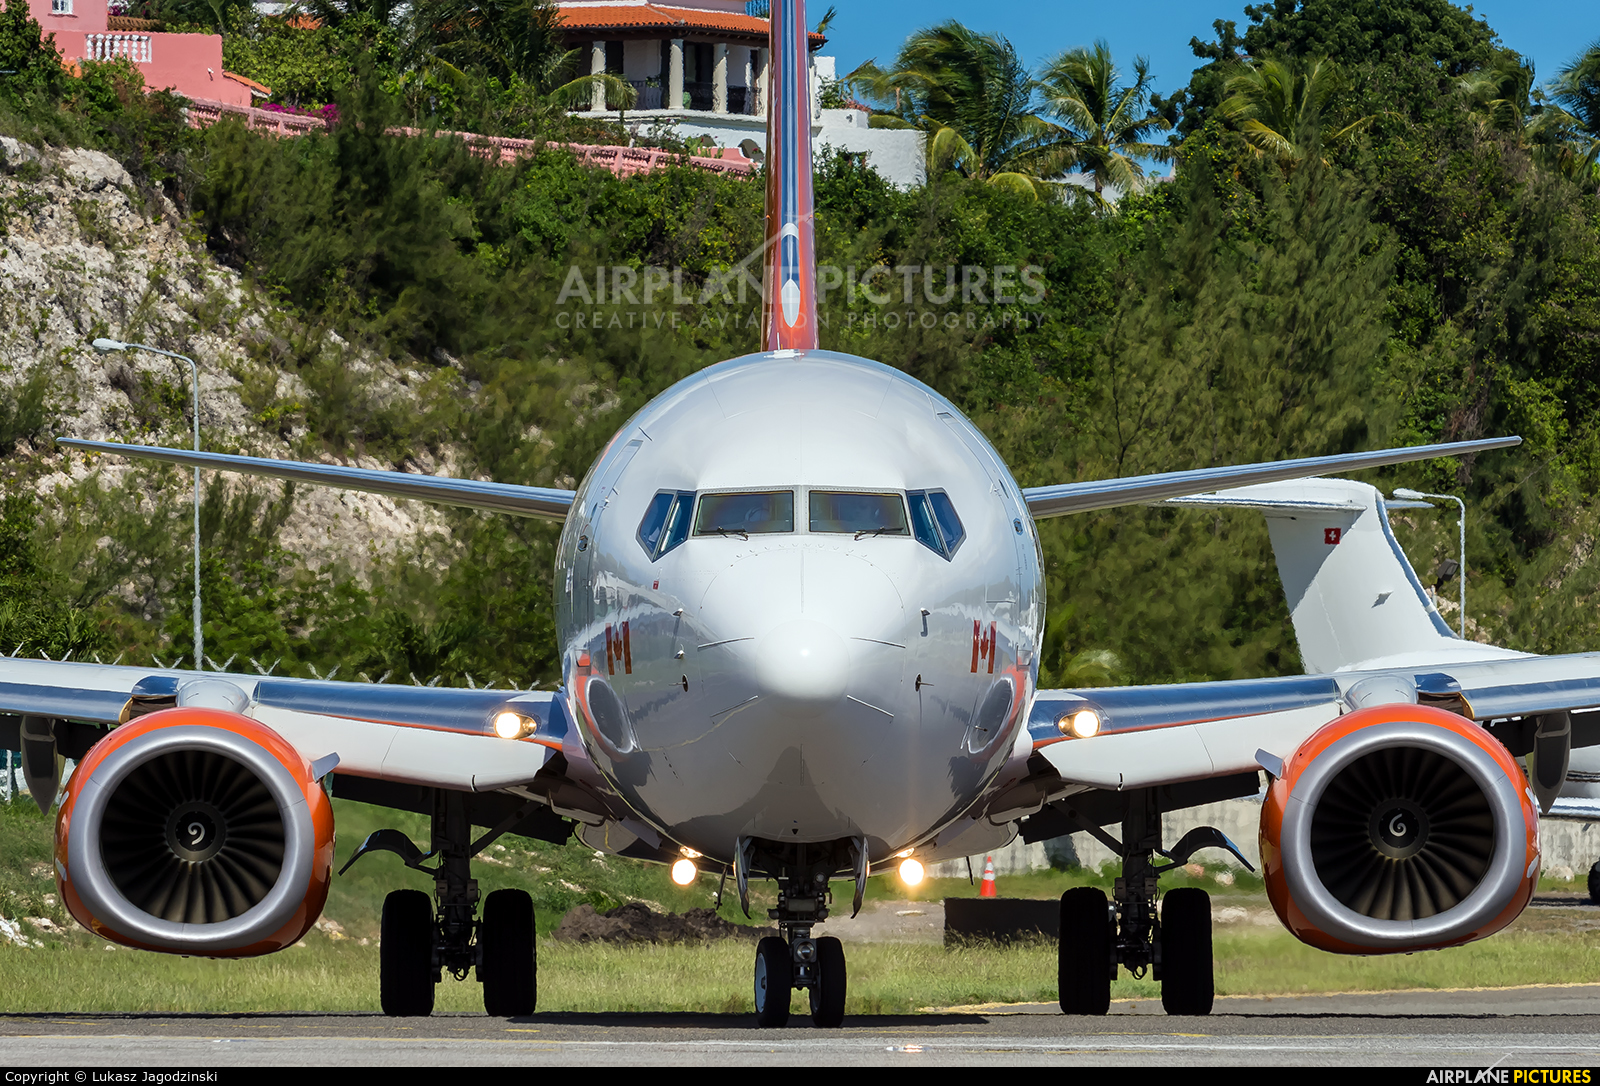 Sunwing Airlines C-FPRP aircraft at Sint Maarten - Princess Juliana Intl